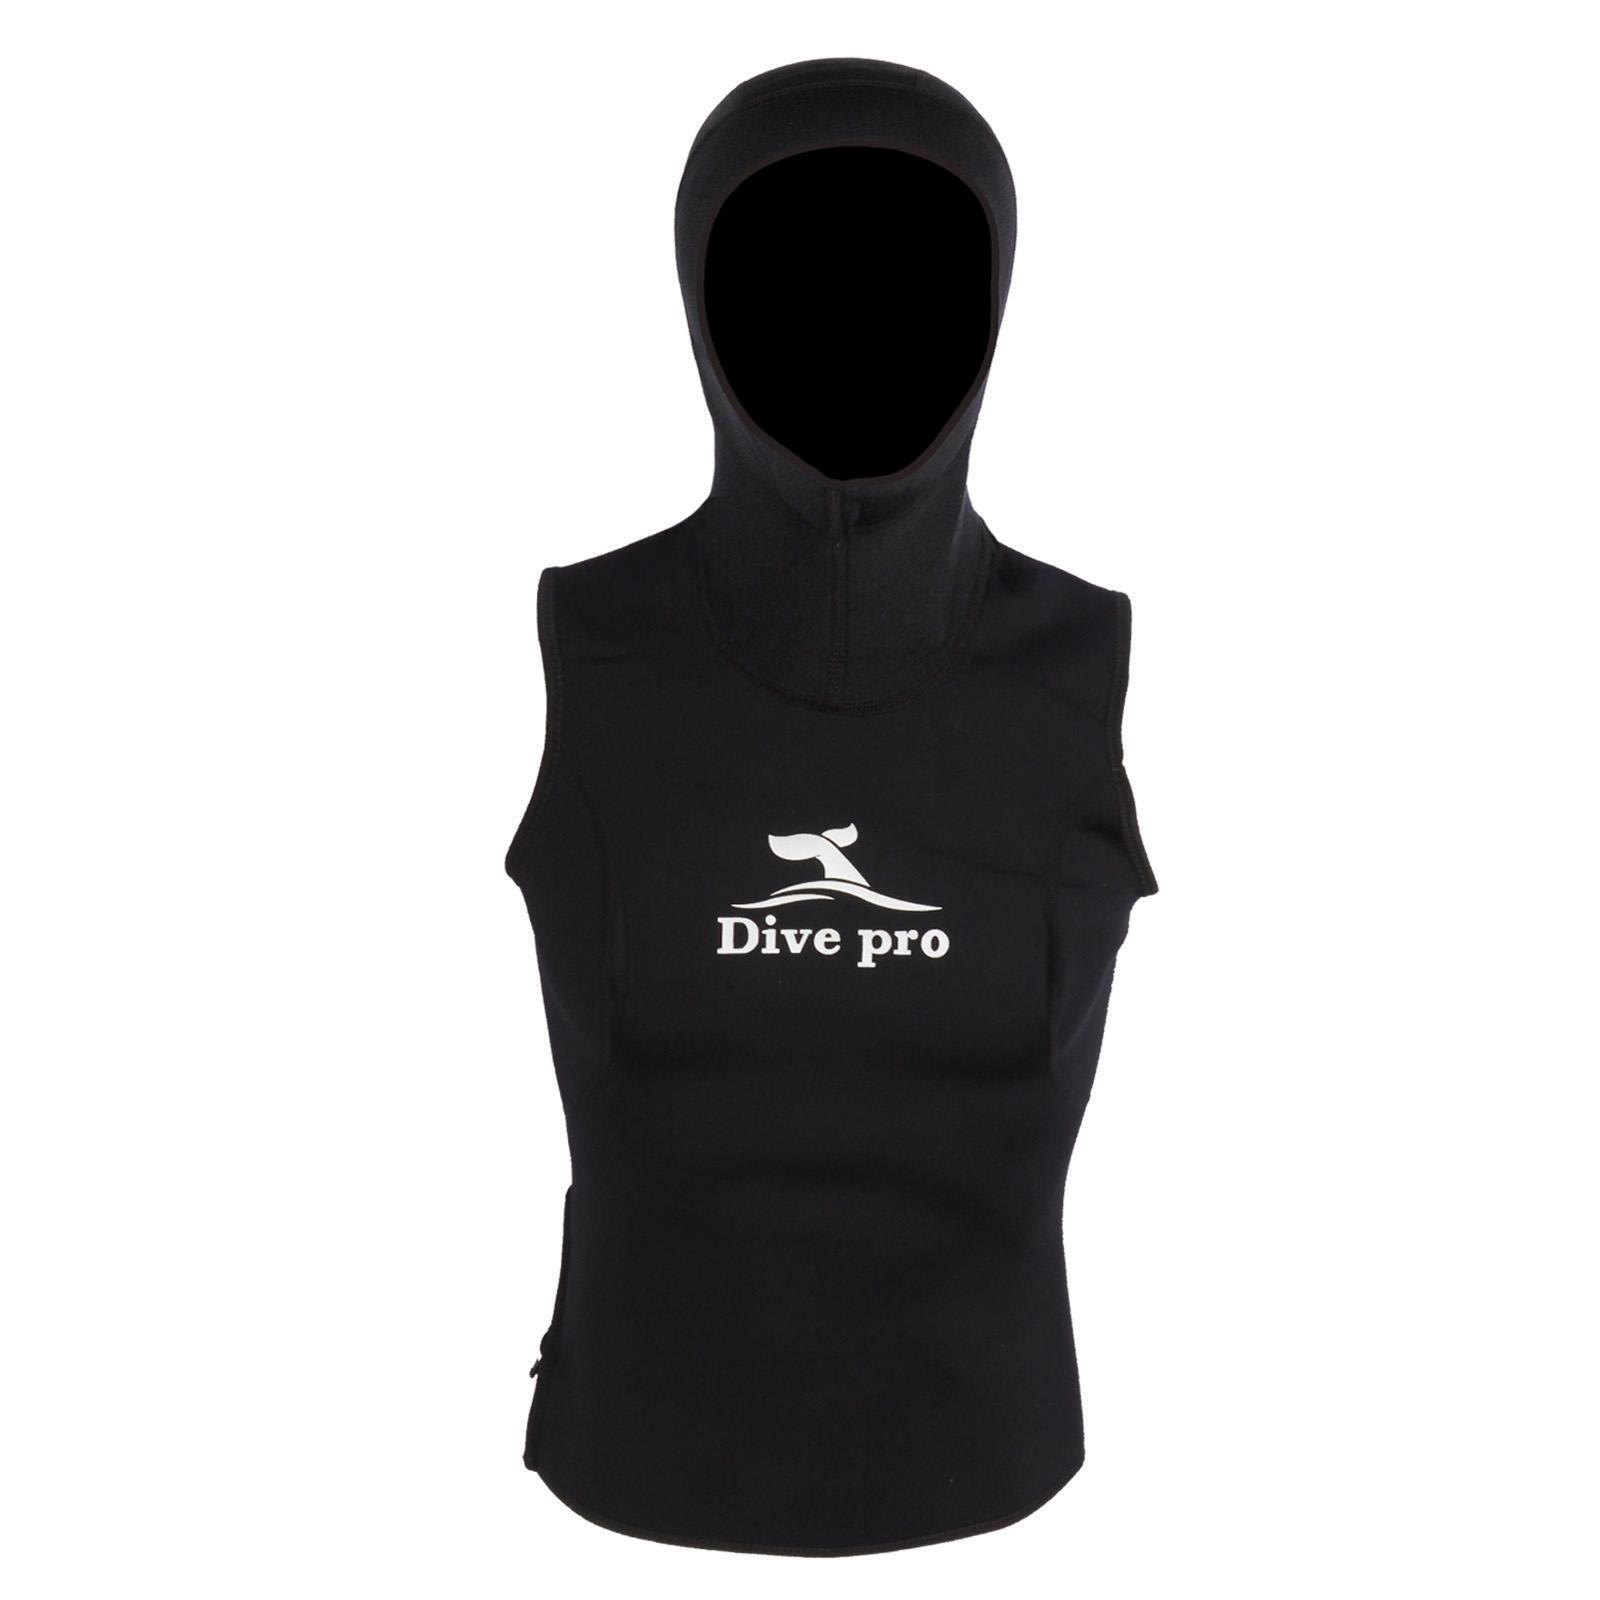 Divepro Vest - 3mm Ladies Neoprene Vest with Head Cover